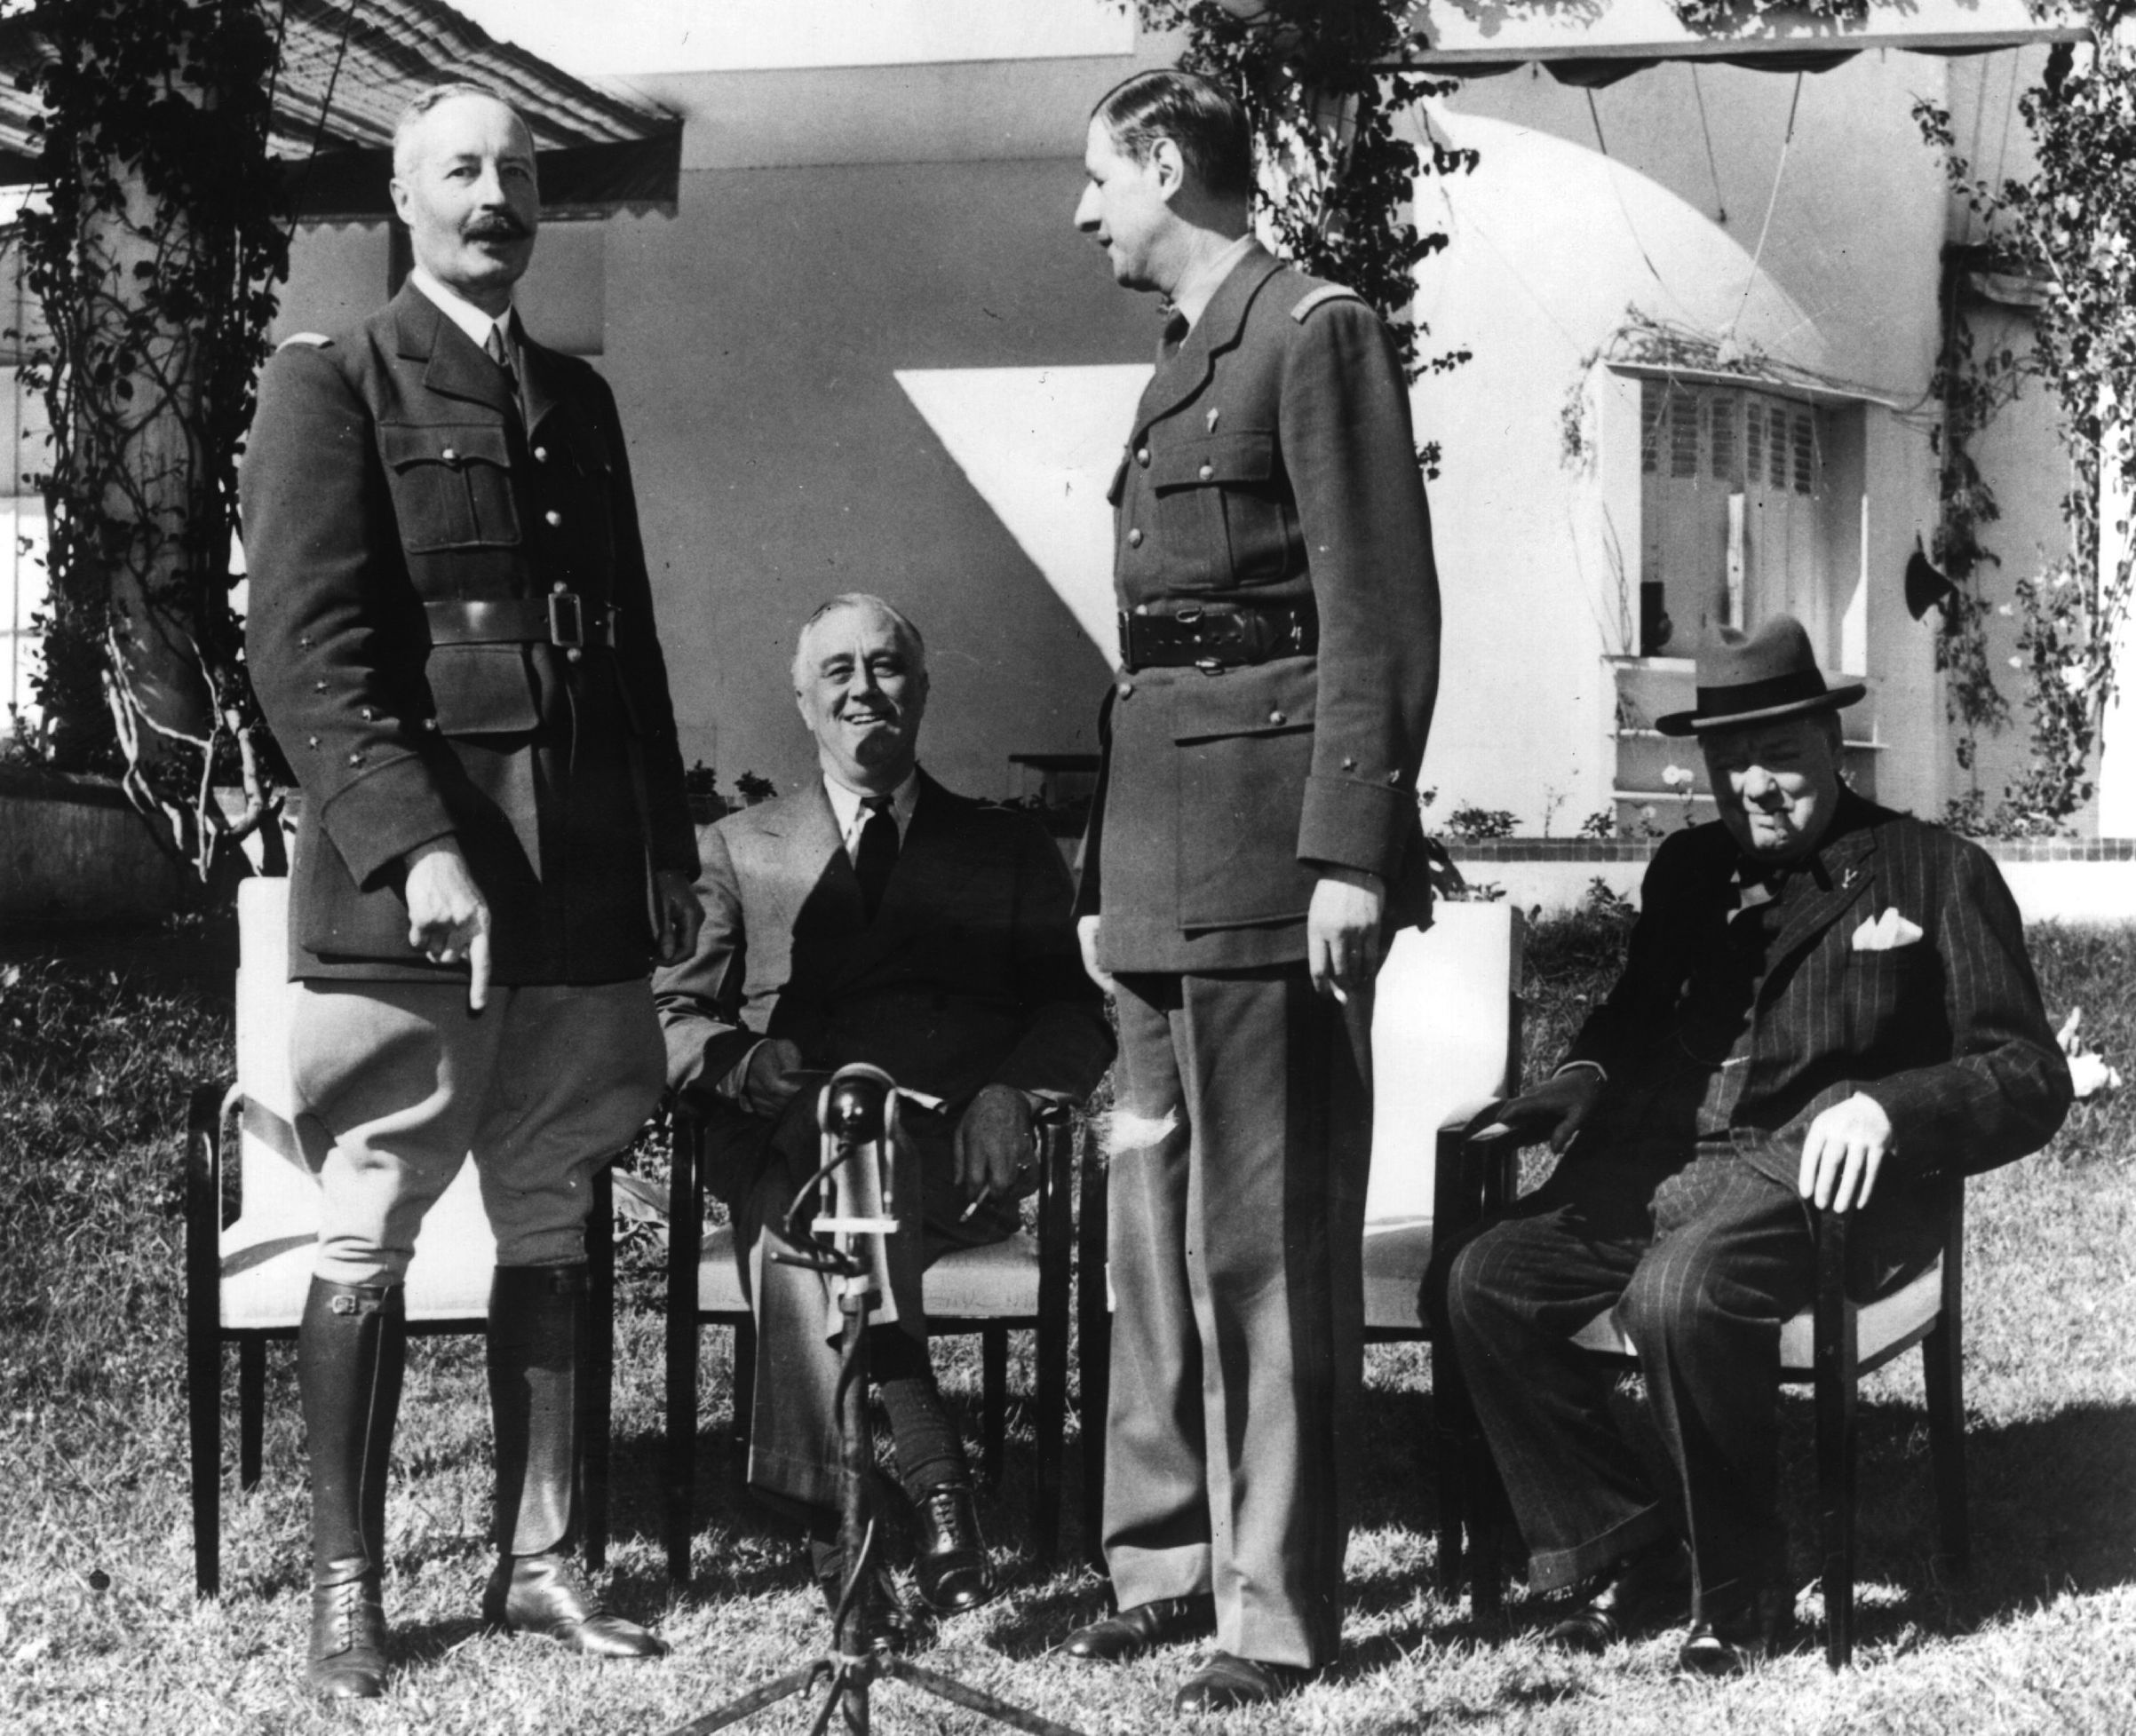 General Henri Honore Giraud and General Charles De Gaulle stand in front of American President Franklin Delano Roosevelt and British Prime Minister Winston Churchill at the Casablanca Conference.